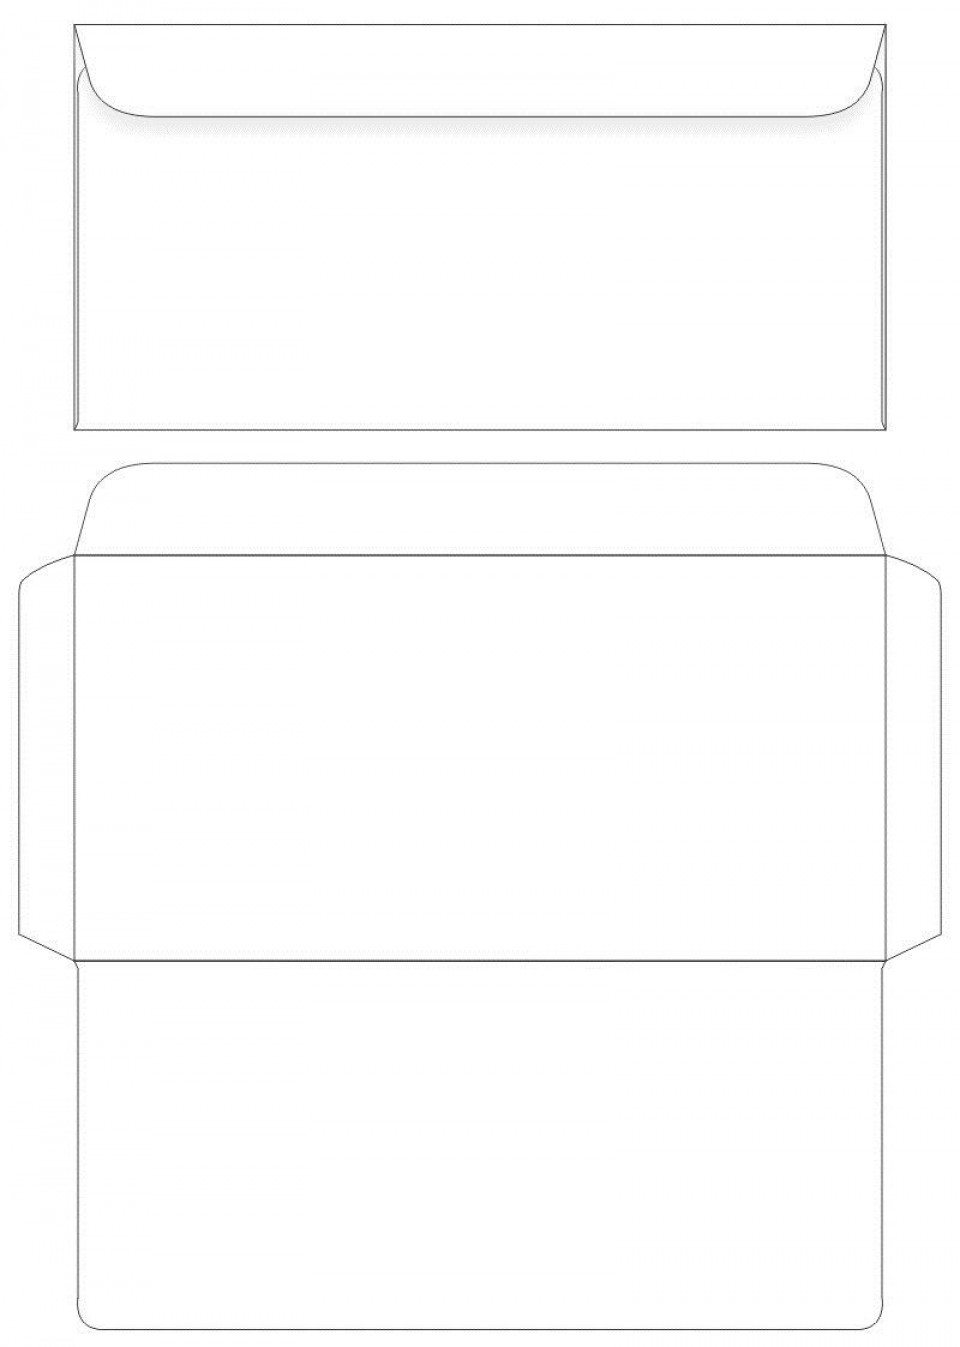 007 Unforgettable Envelope Label Template Free Inspiration  Download960